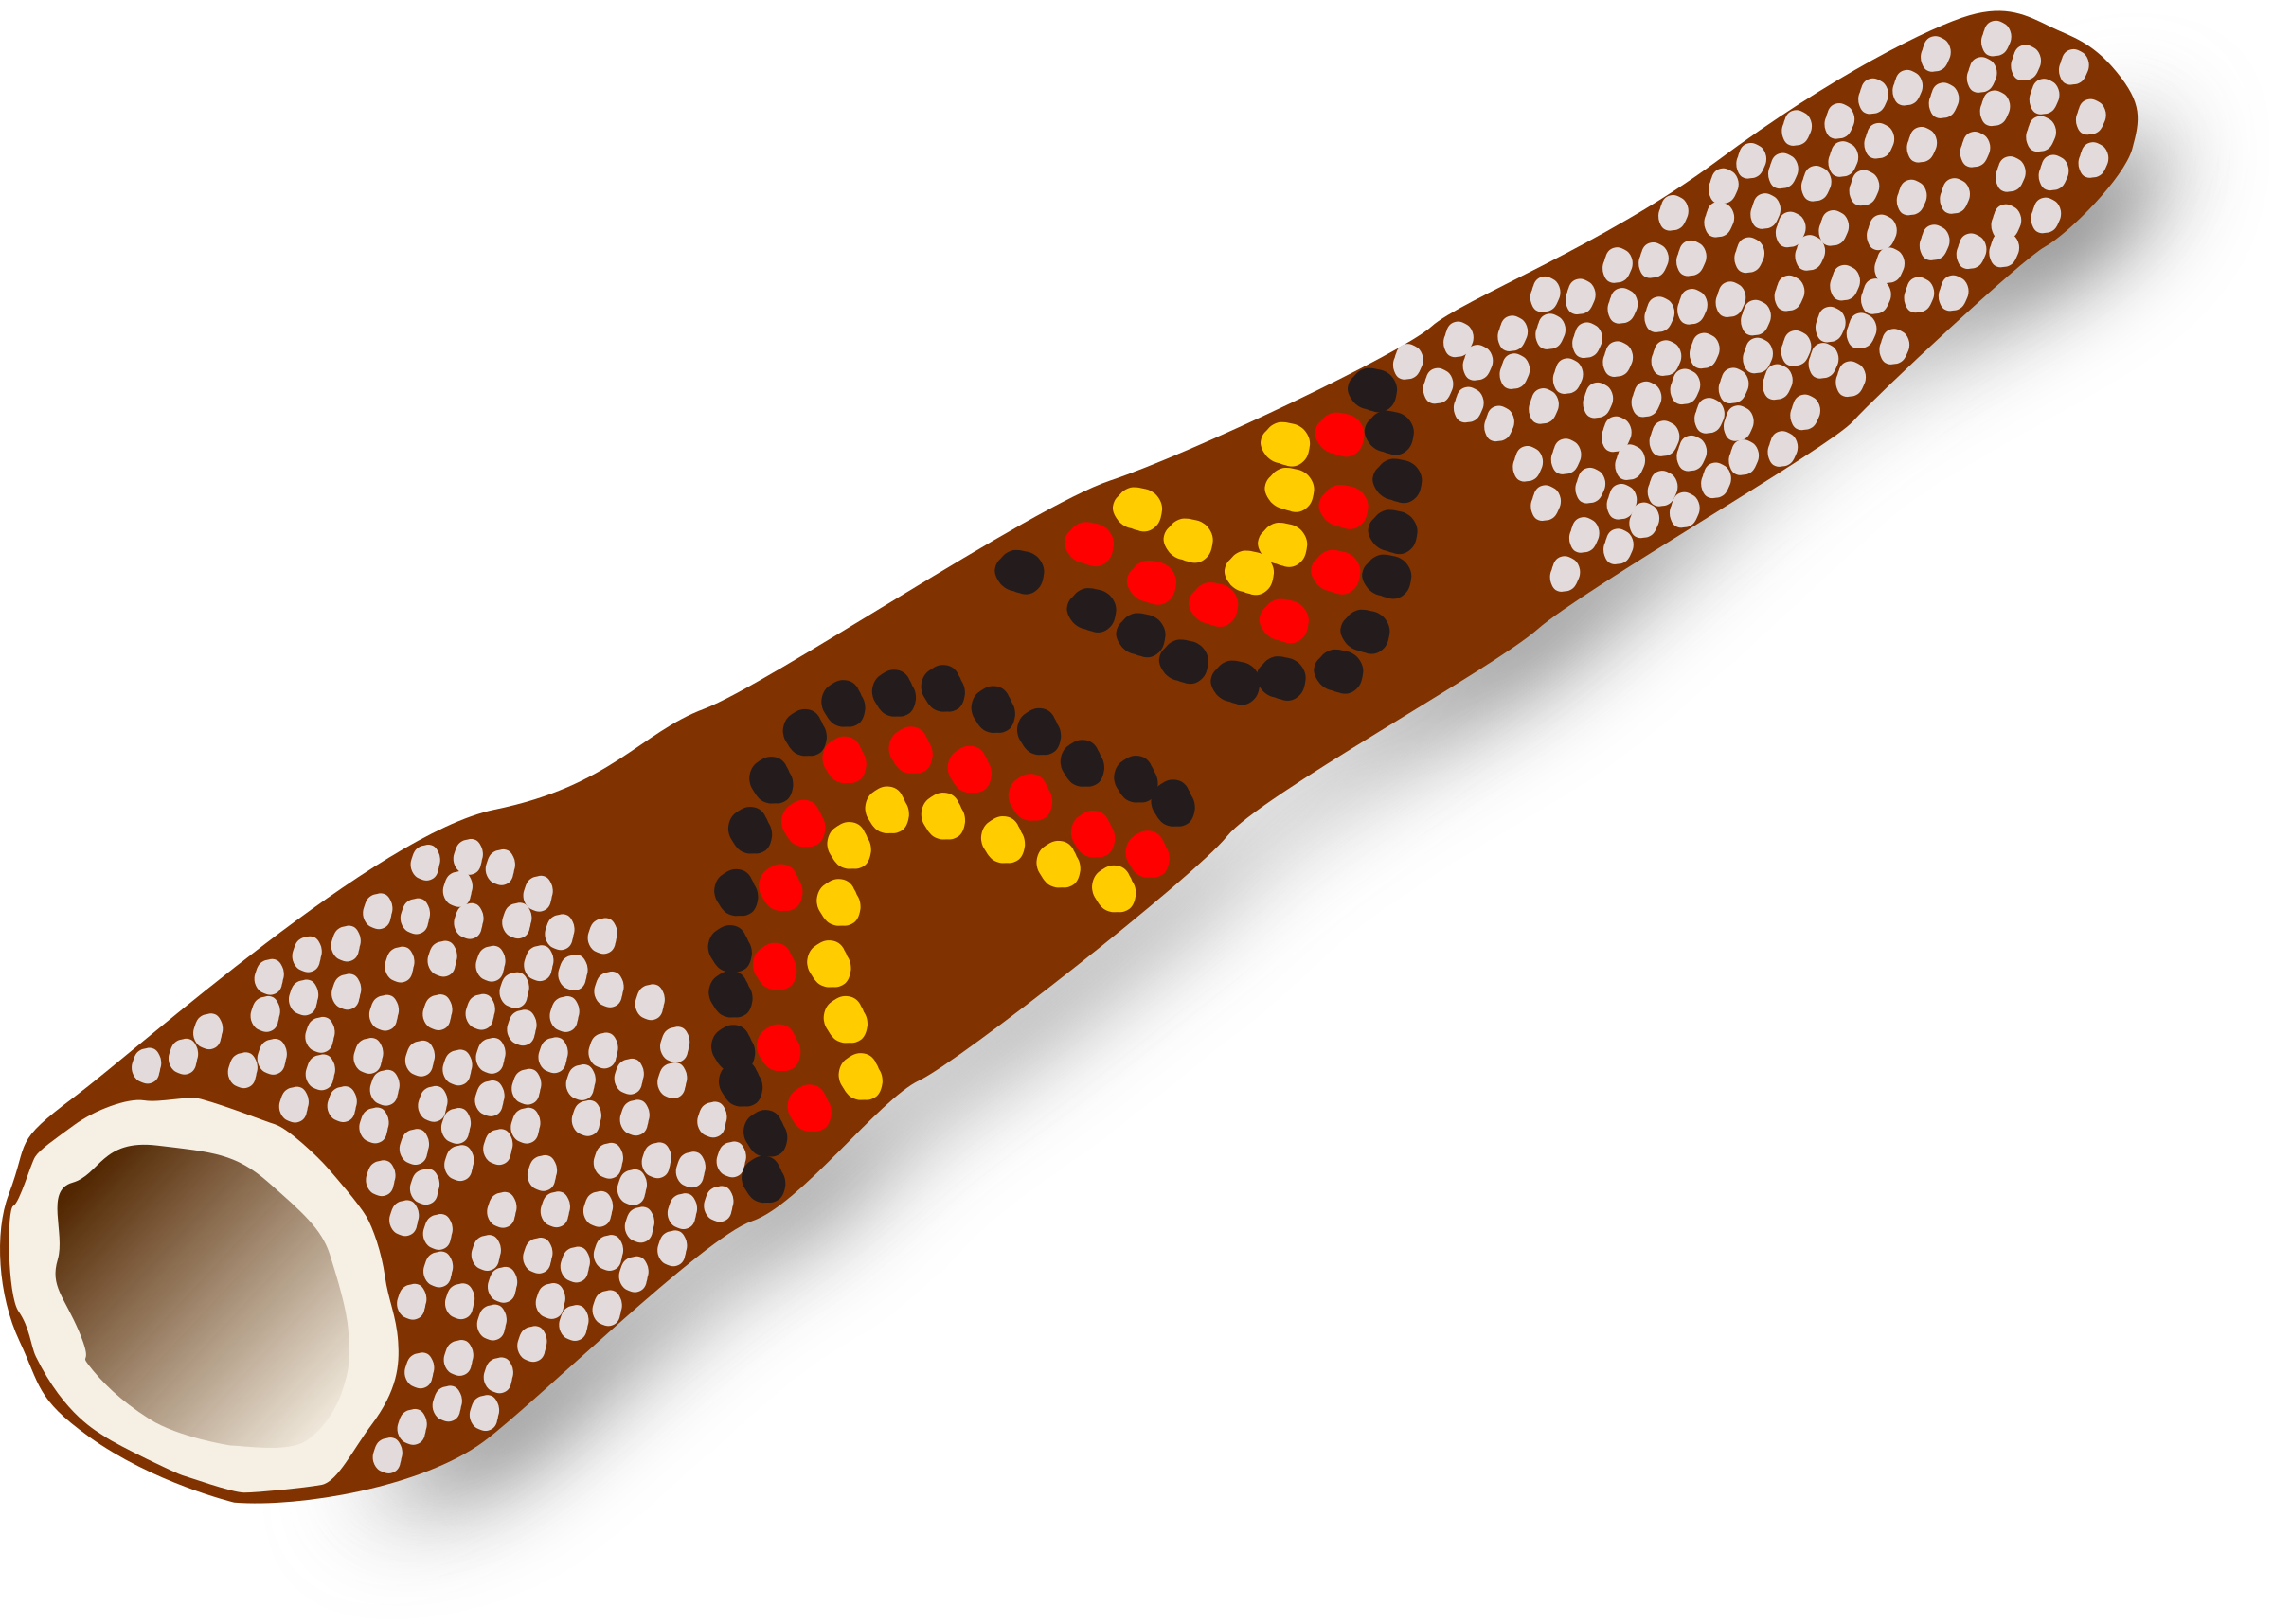 Didgeridoo, Australian traditional music instrument by palomaironique